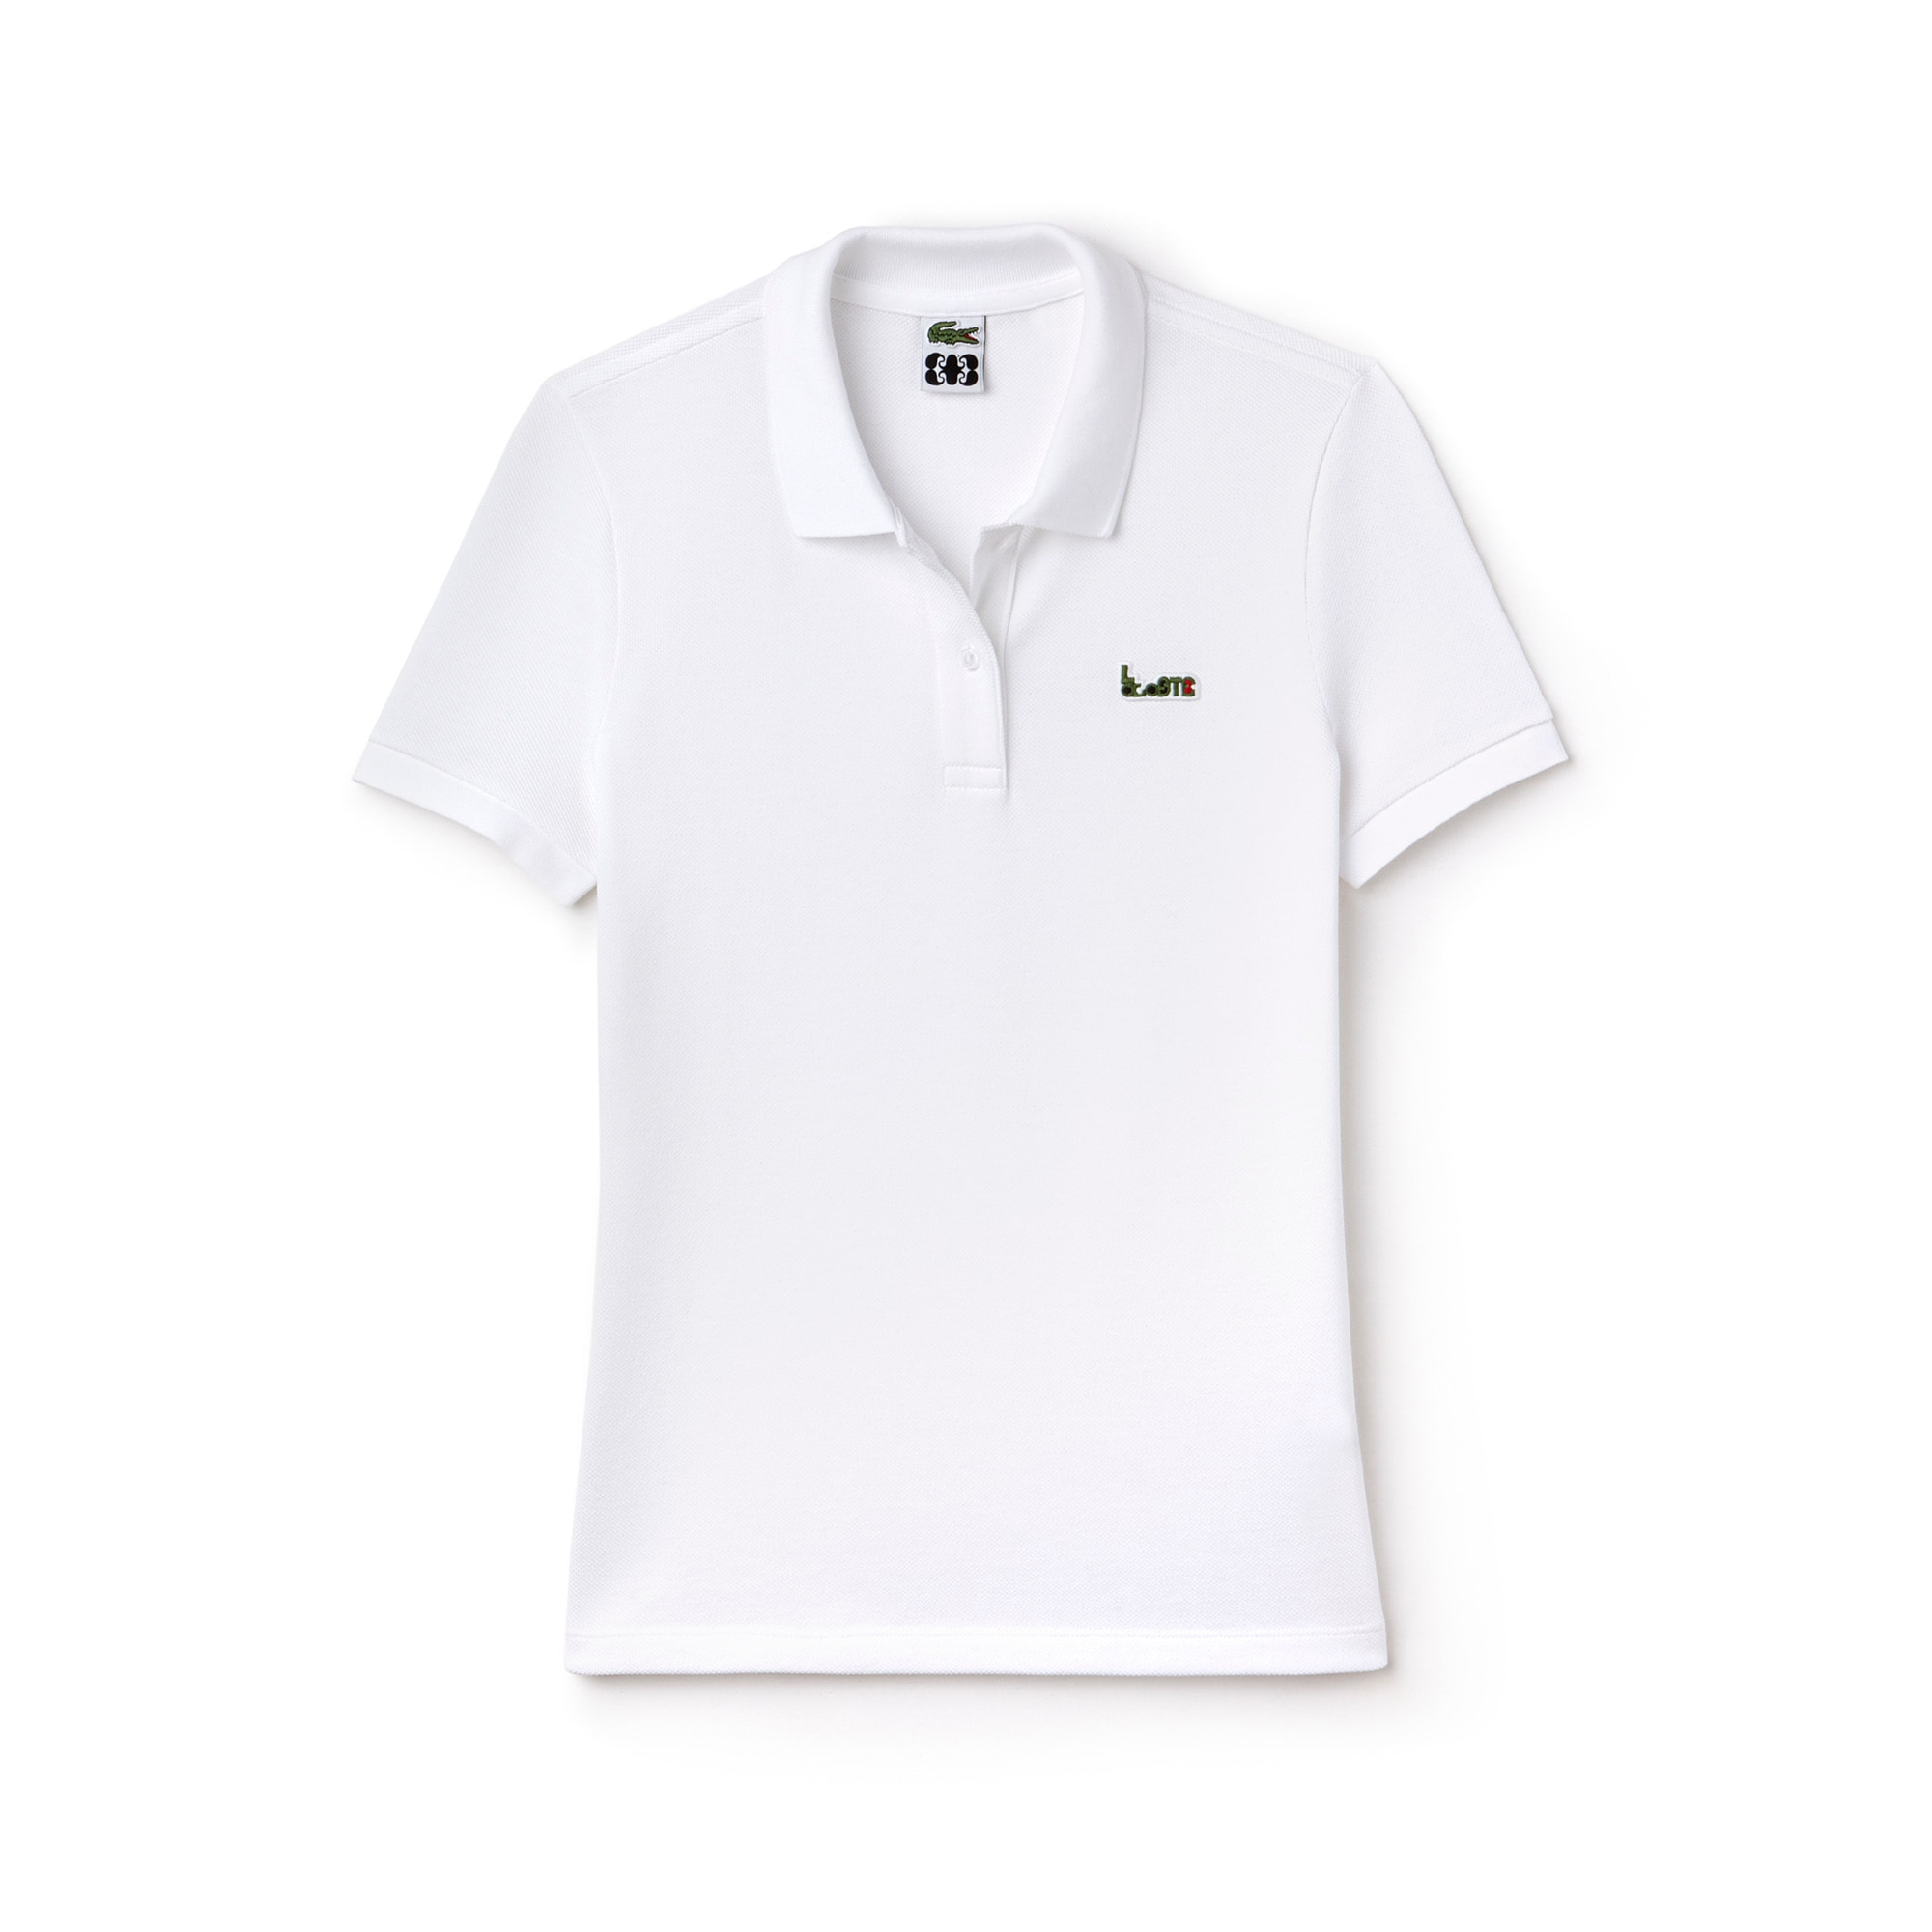 Women's Lacoste M/M Collab Slim Fit Thick Cotton Piqué Polo